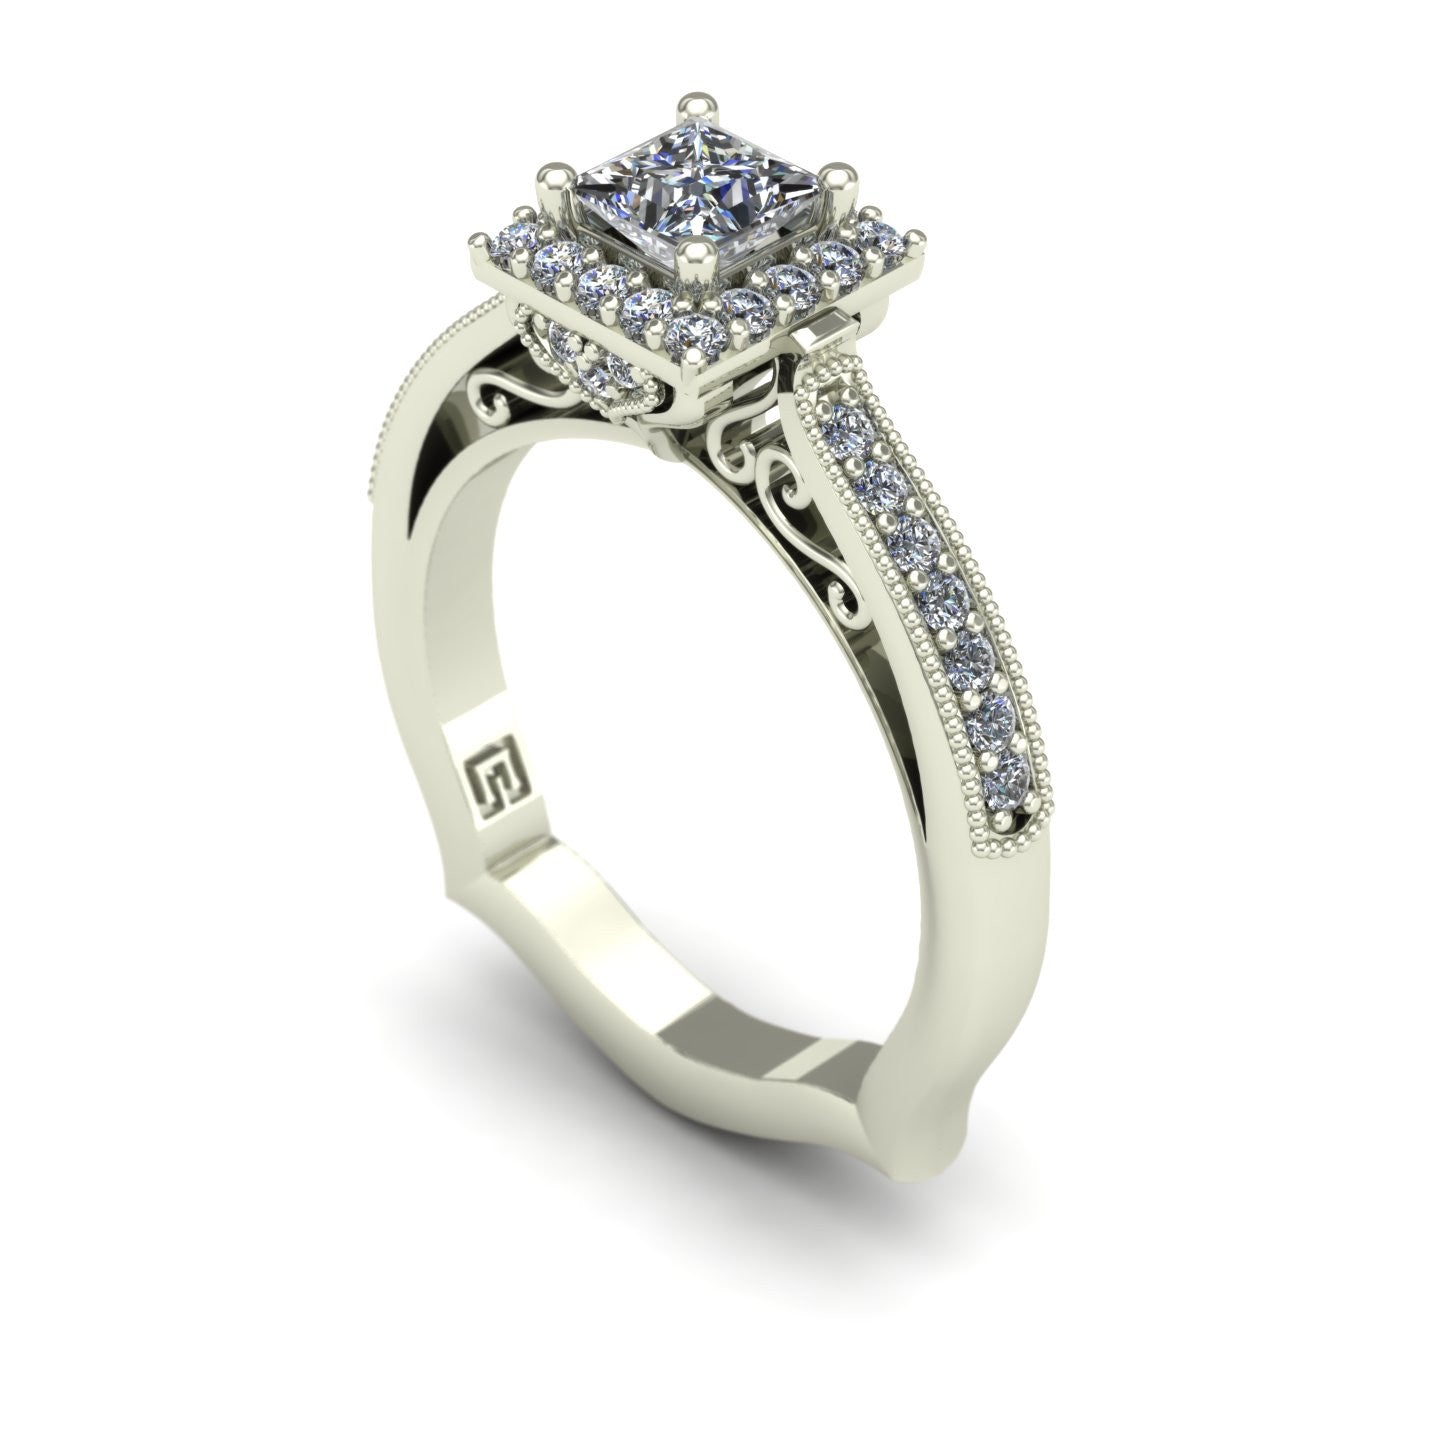 Princess diamond halo engagement ring in 14k white gold